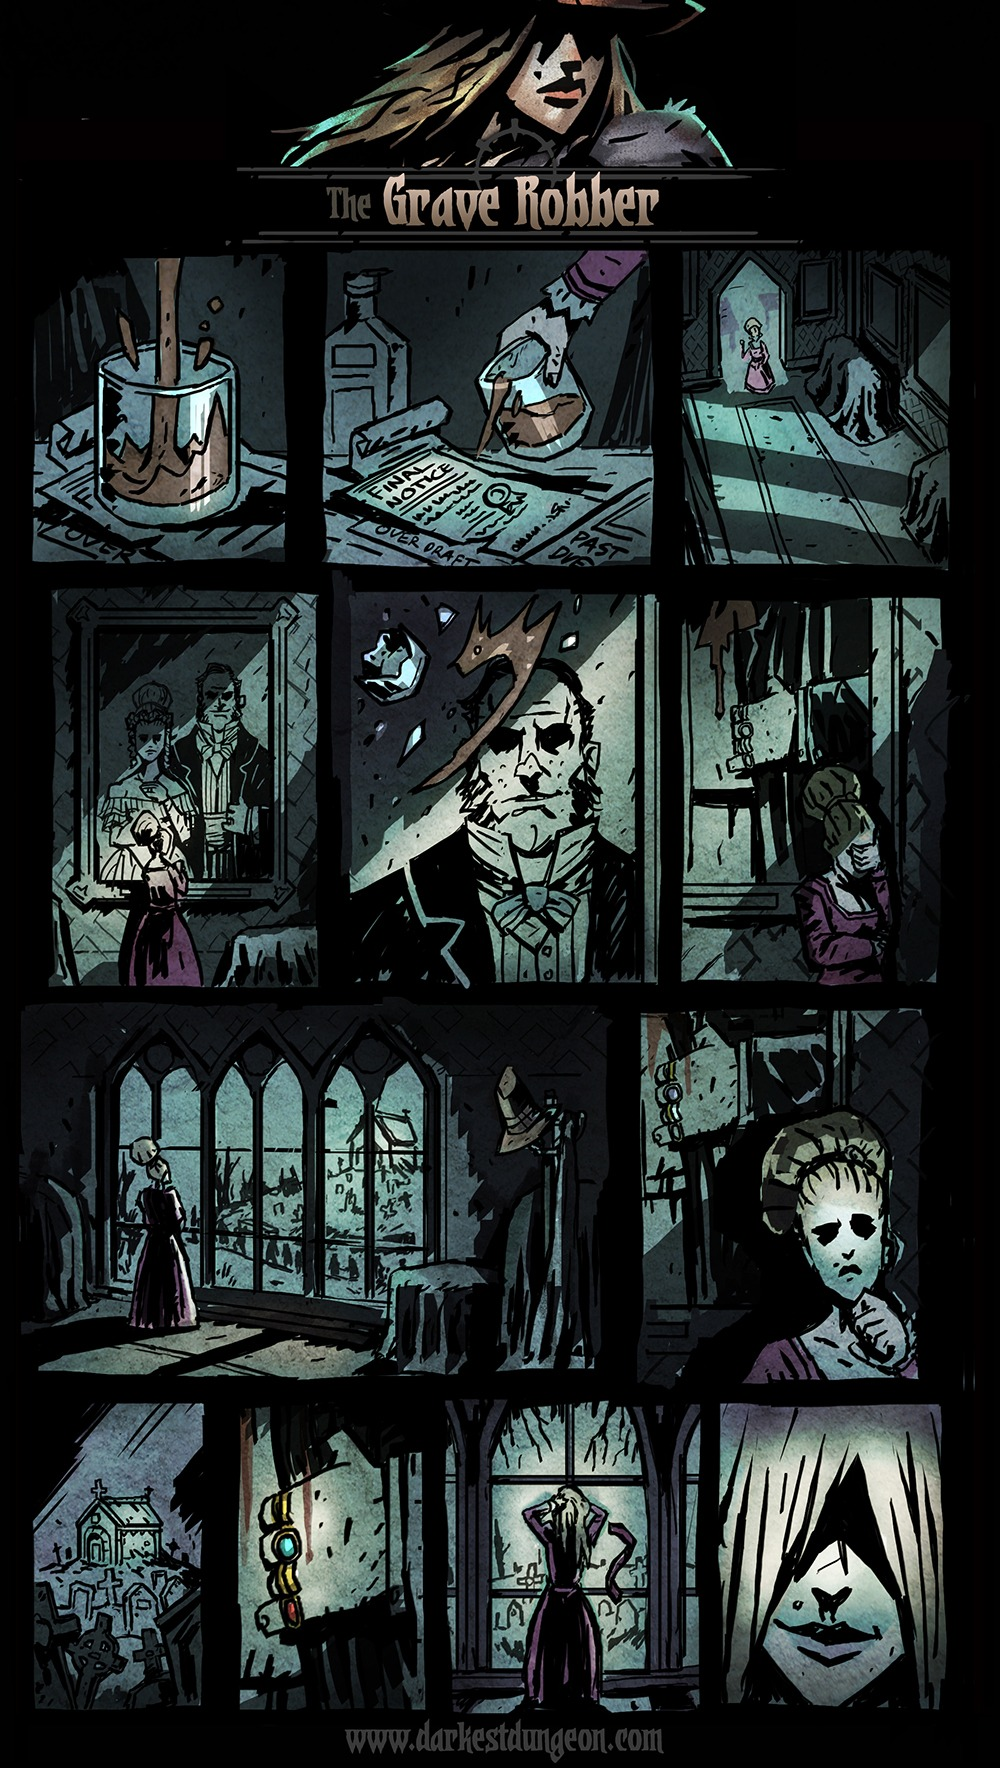 Darkest Dungeon Presents: The Grave Robber